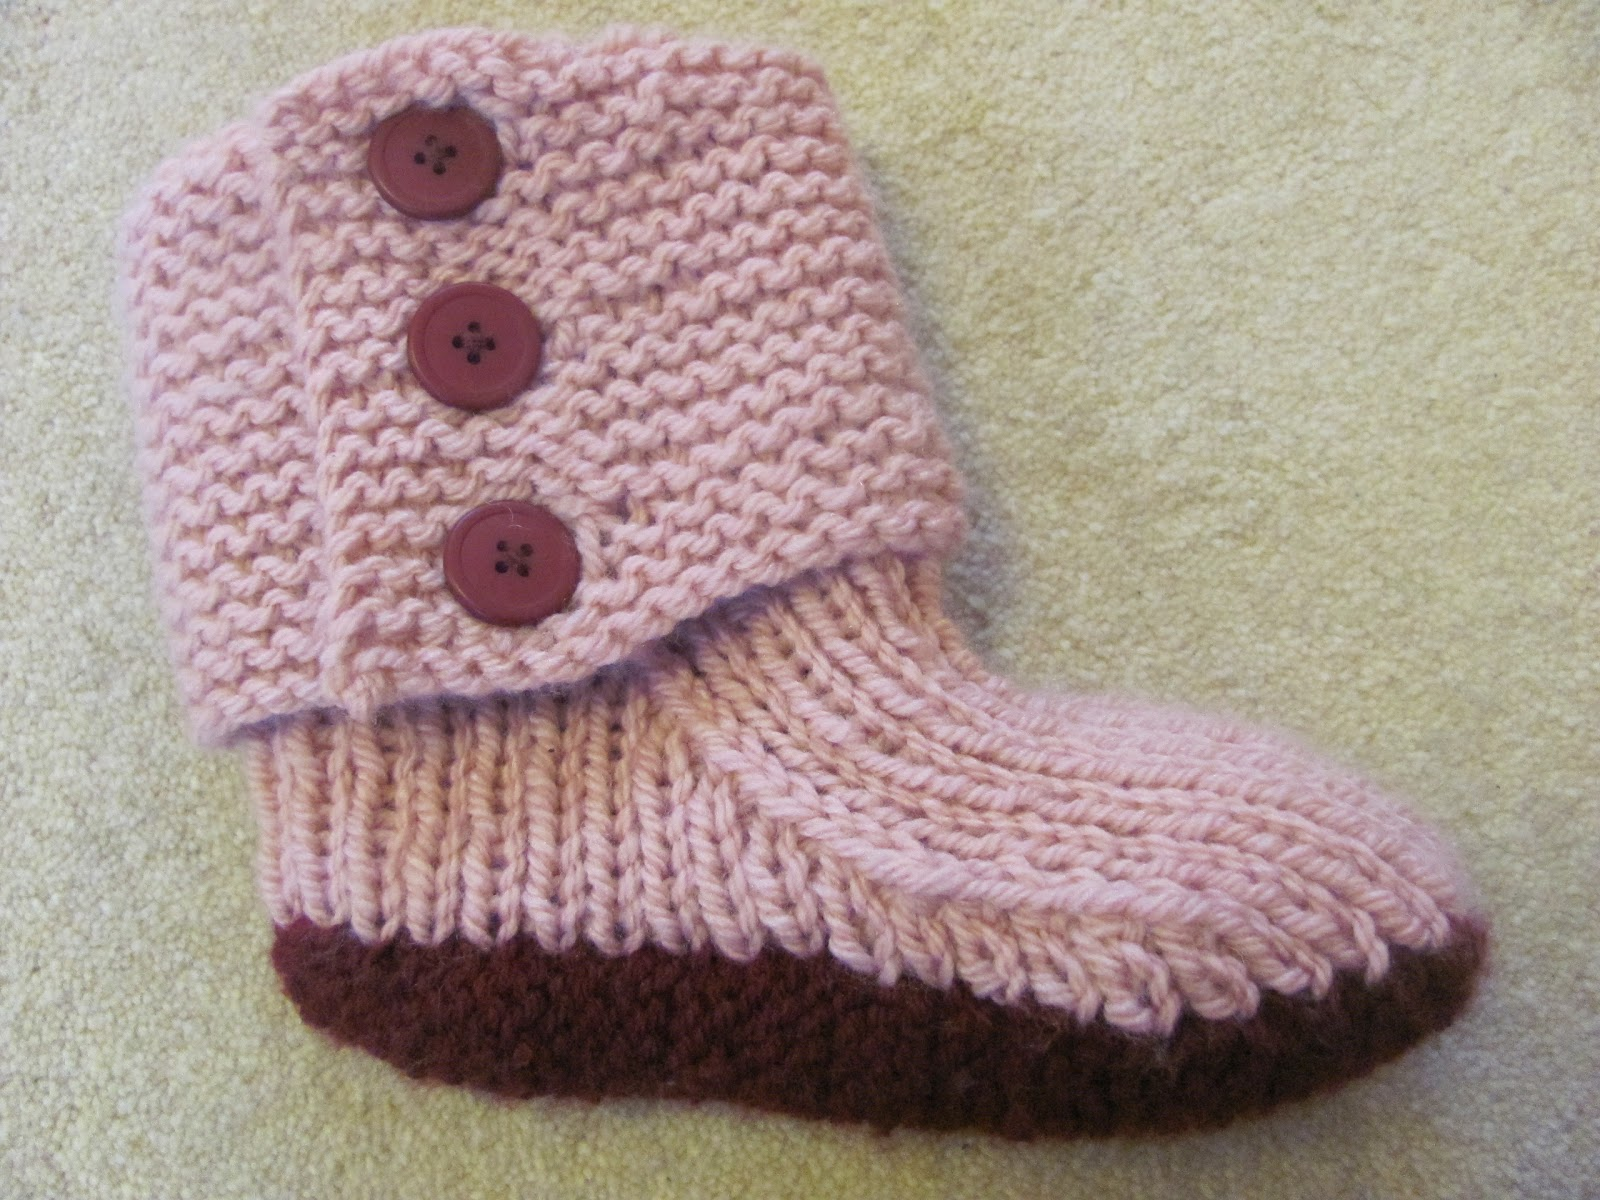 Knitted Slippers Pattern With Two Needles : The Bookworm: Christmas Knitting